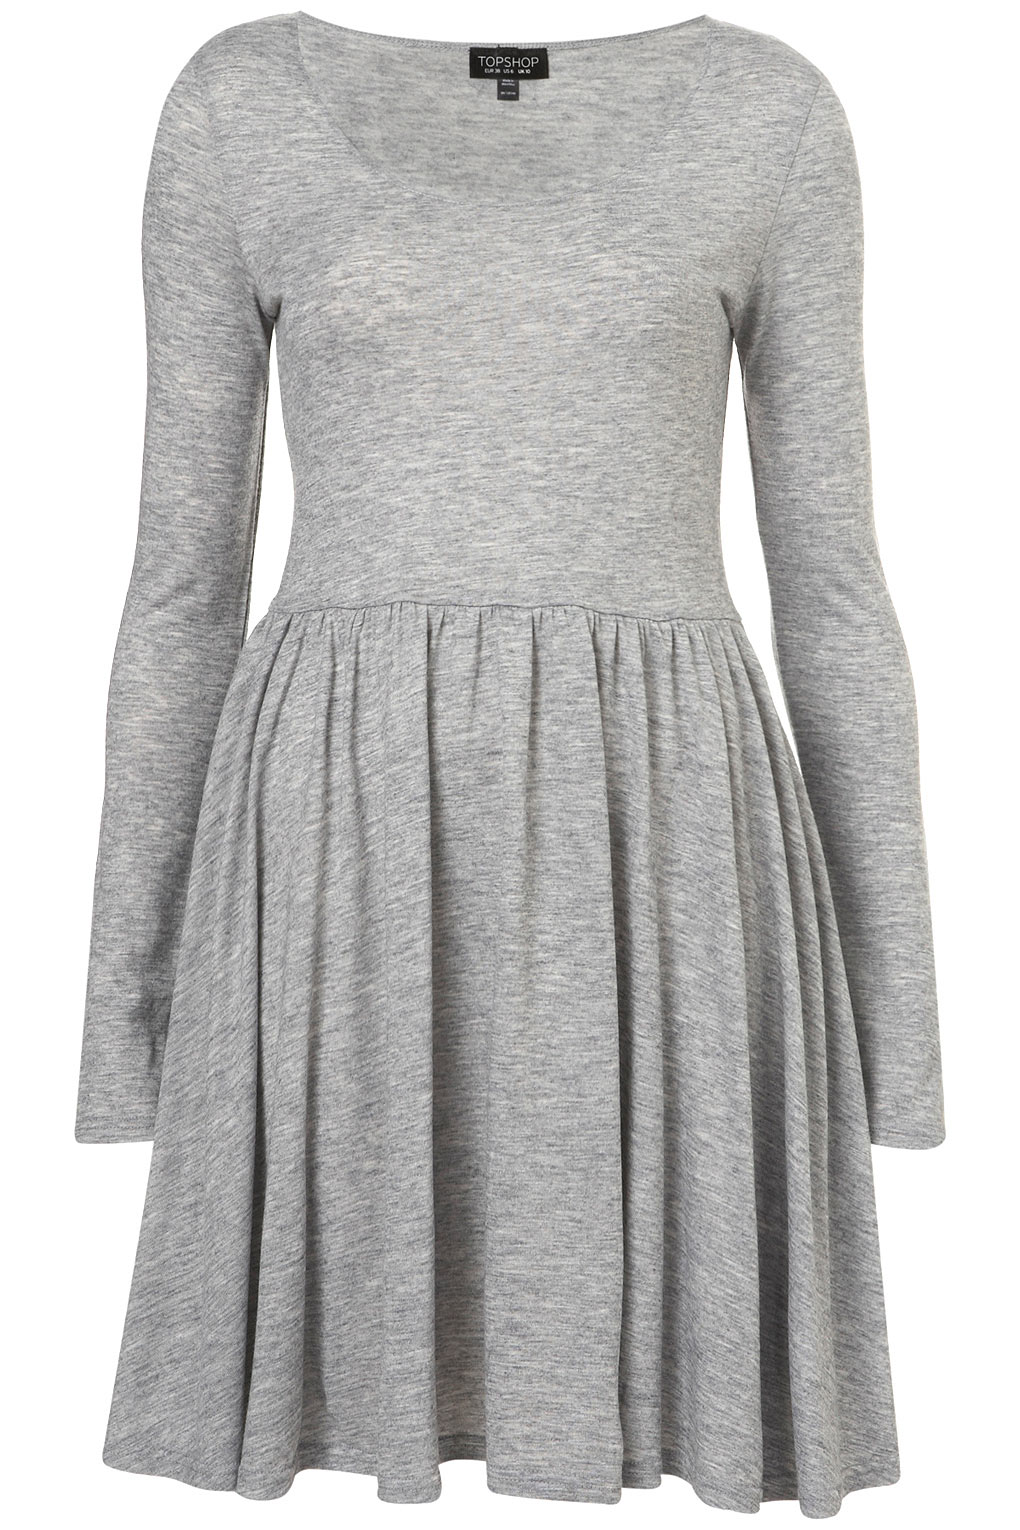 Juniors Derek Heart Soft stretch knit, twist front skater dress with a v-neck, long sleeve and a 33 inch length. 92% Polyester, 8% Spandex. Machine wash. Tumble dry.